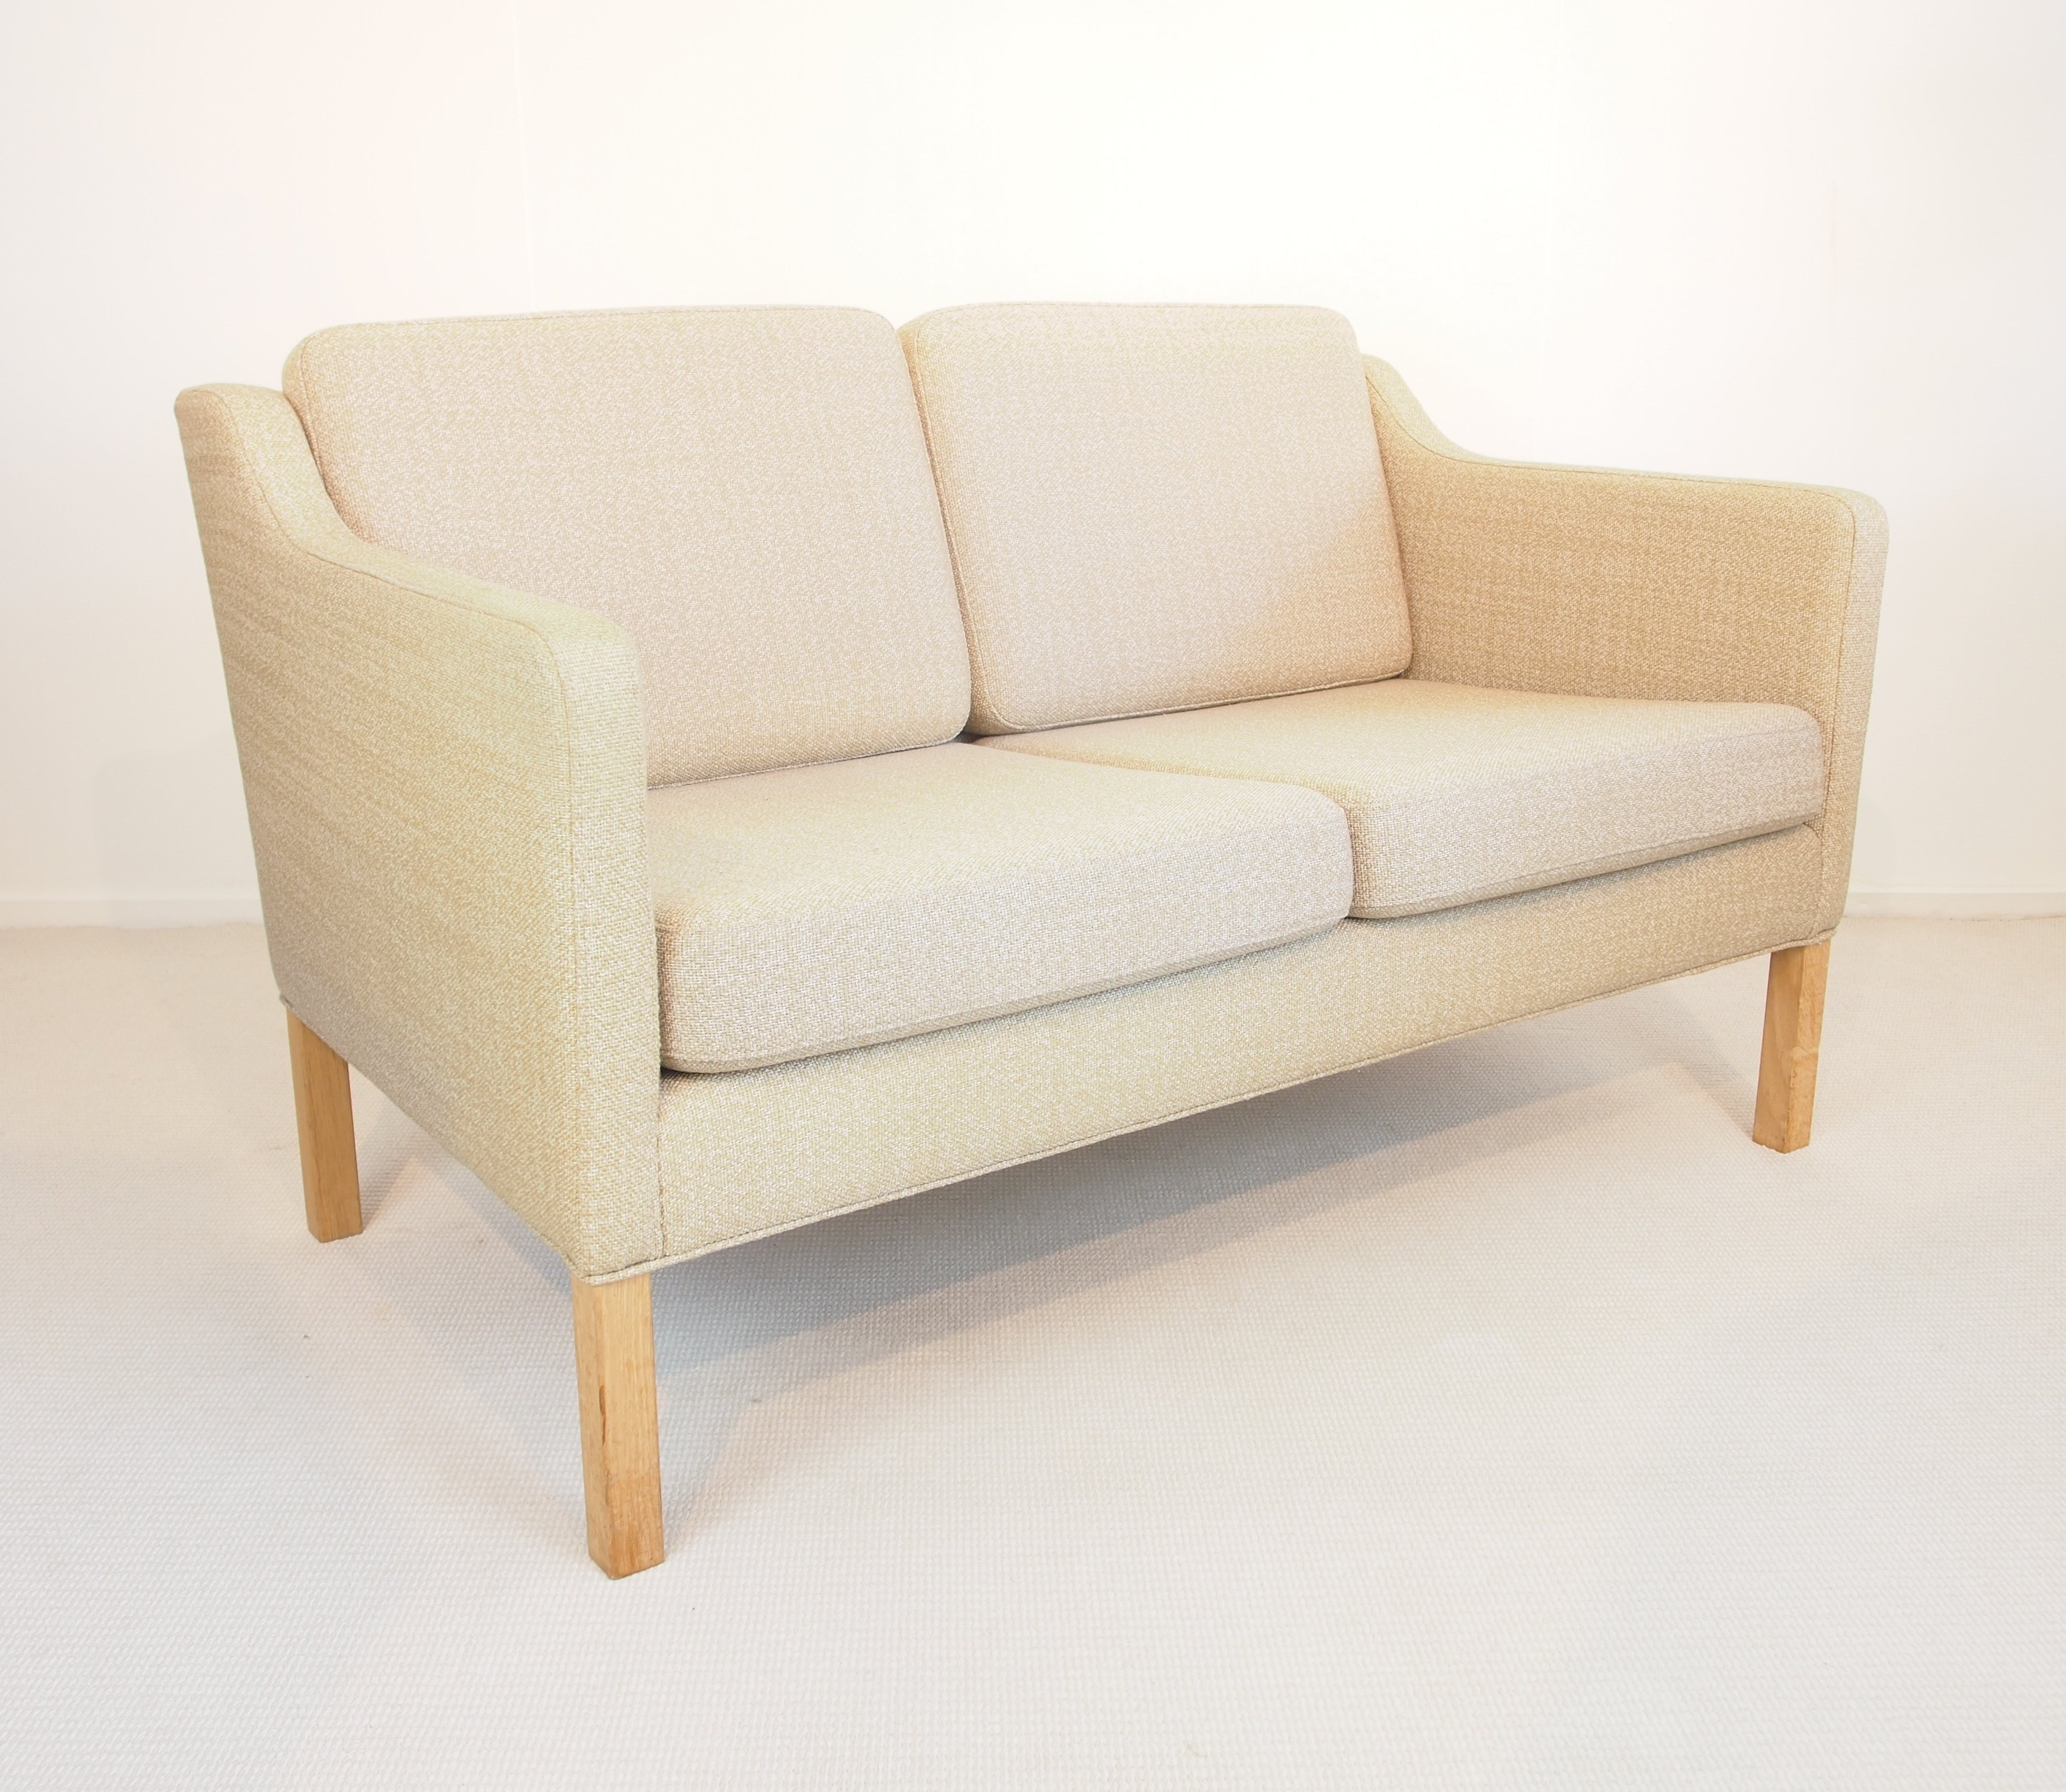 2 X Model 2322 Sofa By Børge Mogensen For Fredericia, 1970s